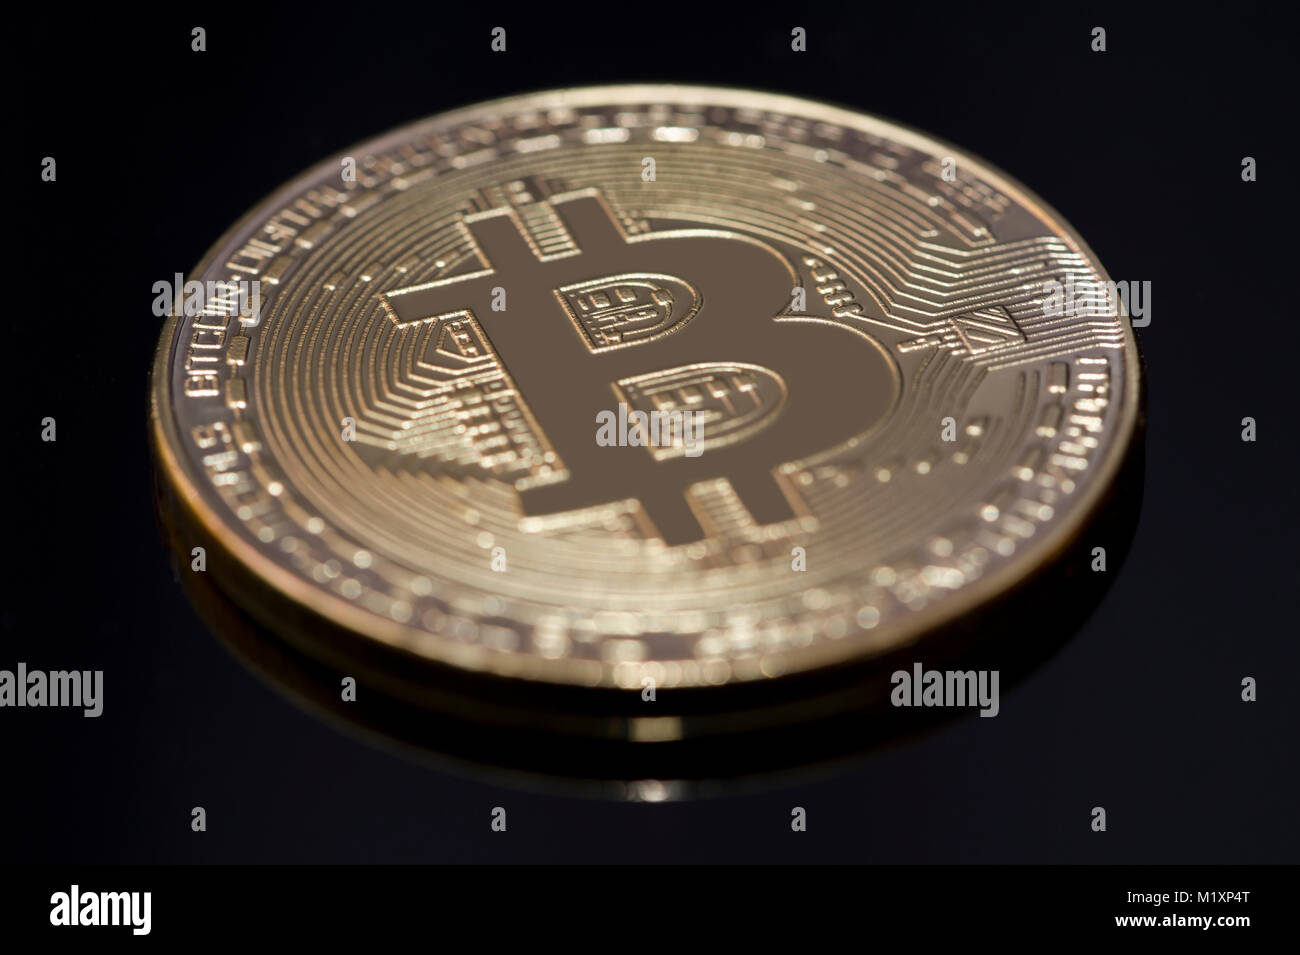 A Gold Bitcoin on a gloss black background - Stock Image